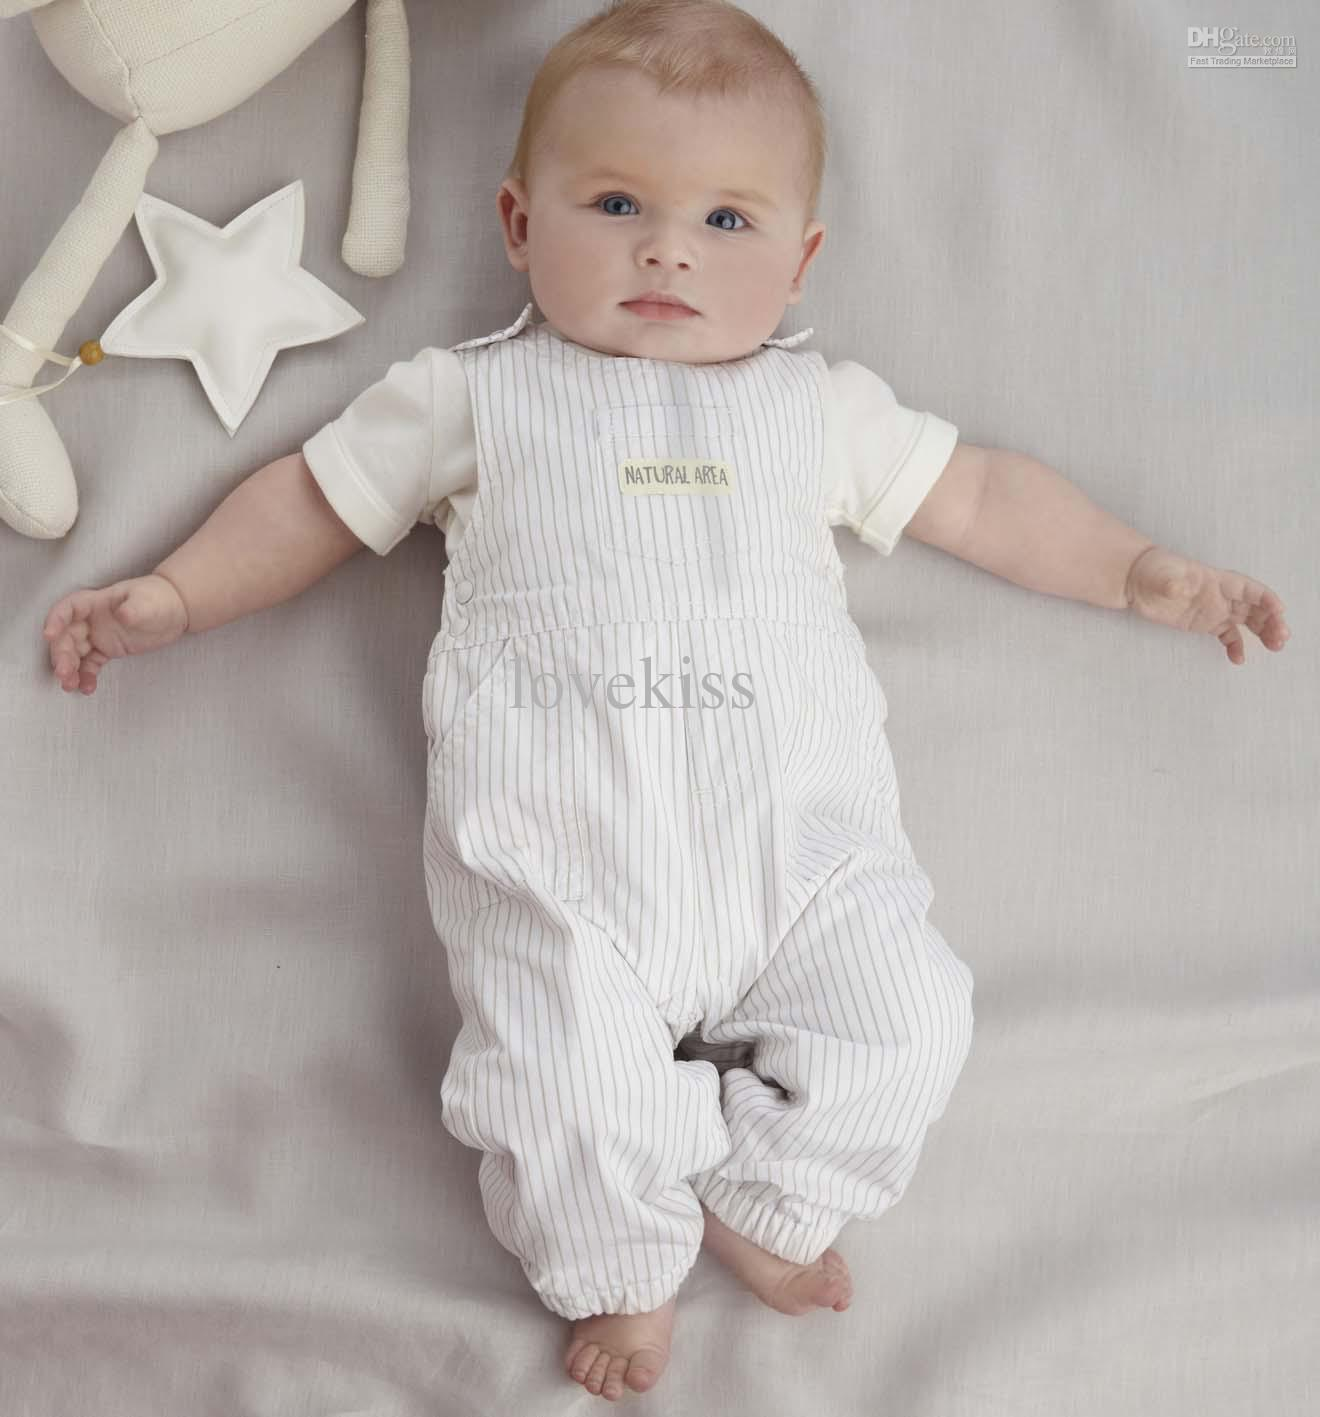 Free shipping on baby boy clothes at fabulousdown4allb7.cf Shop bodysuits, footies, rompers, coats & more clothing for baby boys. Free shipping & returns.